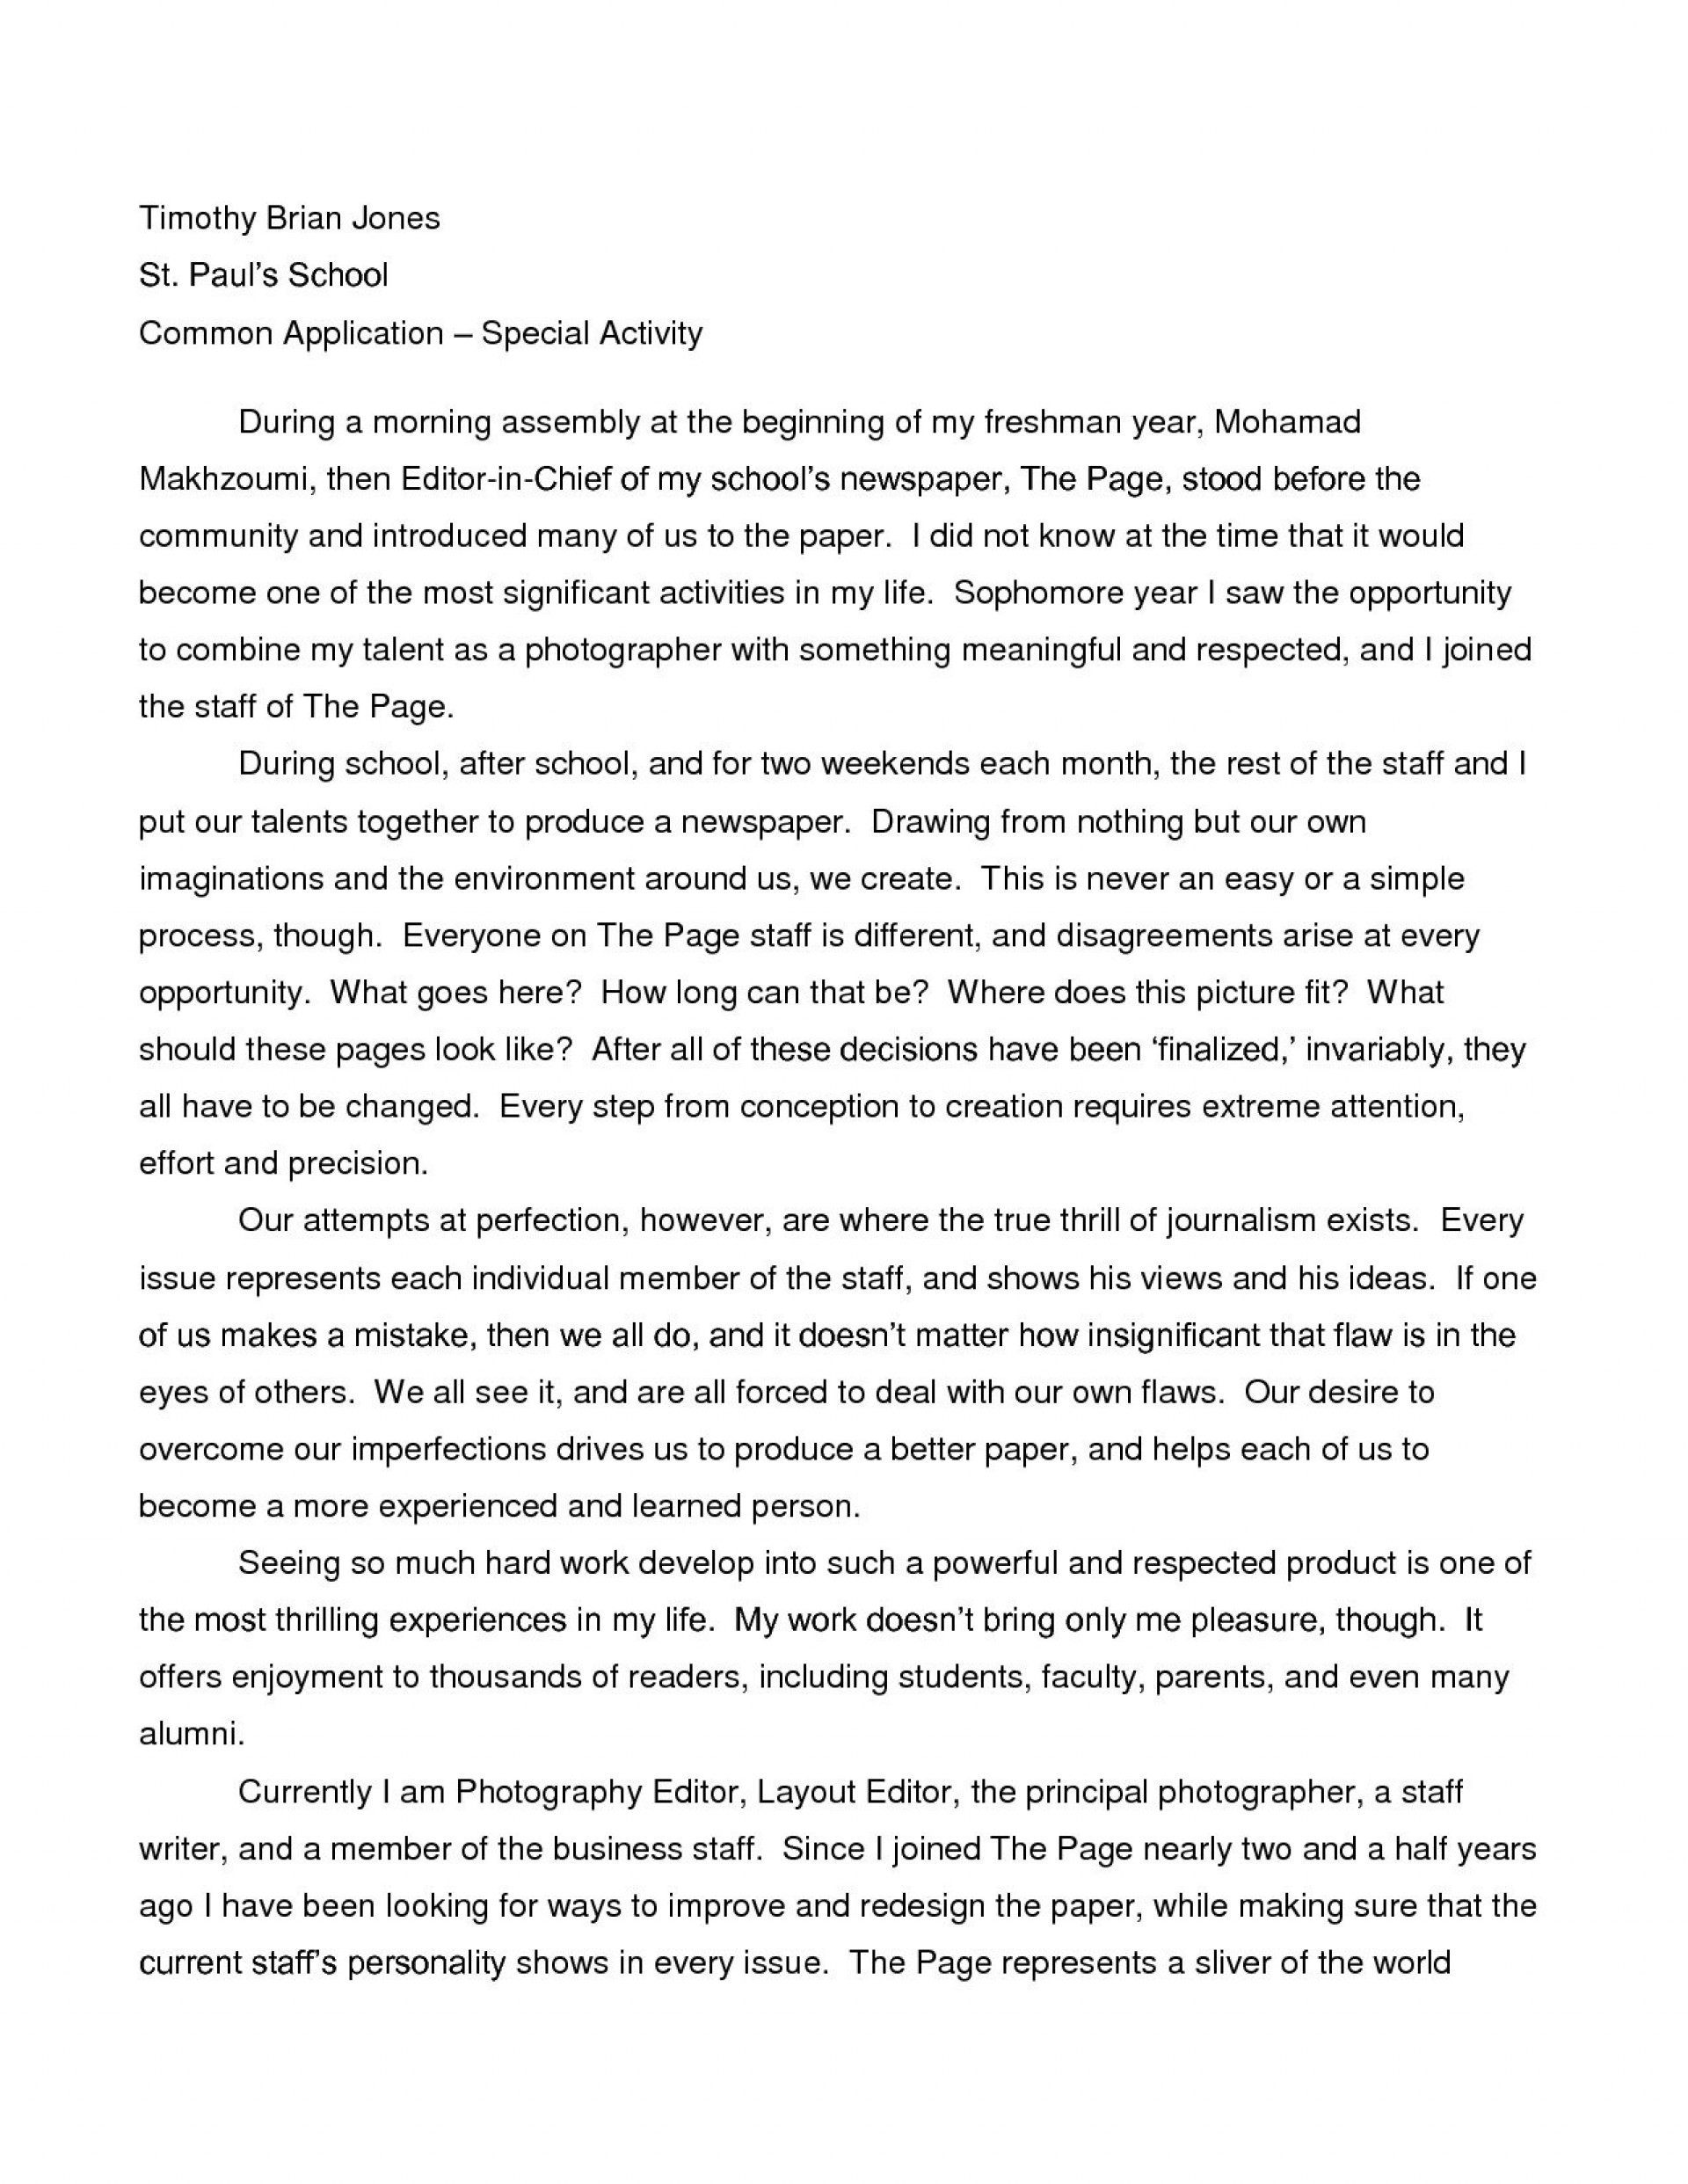 006 Persuasive Essays Proper Format For Essay Coursework Help Qnpaperuplf Examples 5th Grade Of High School Personal Narrative Intended Argumentati Middle Pdf Writing About Love Incredible Topics Schoolers Ready 1920